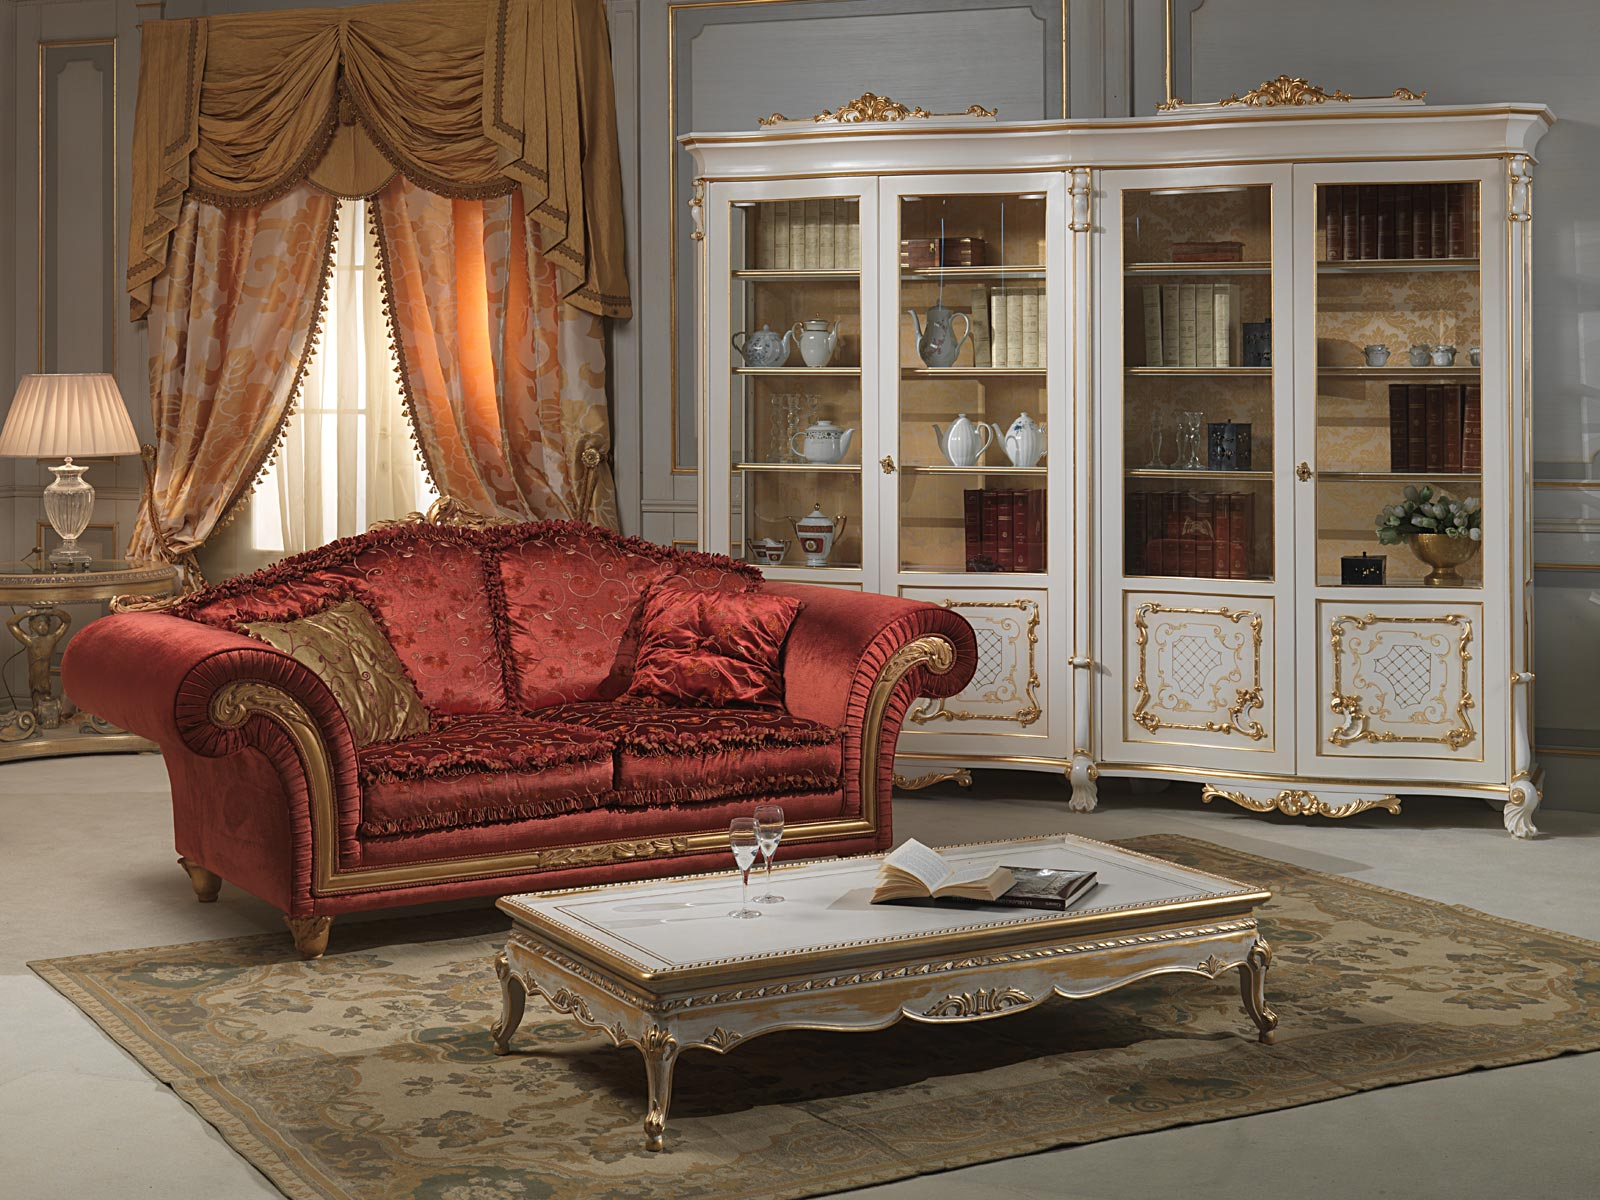 Living Room With Venice Glass Showcase In Louis XV Style